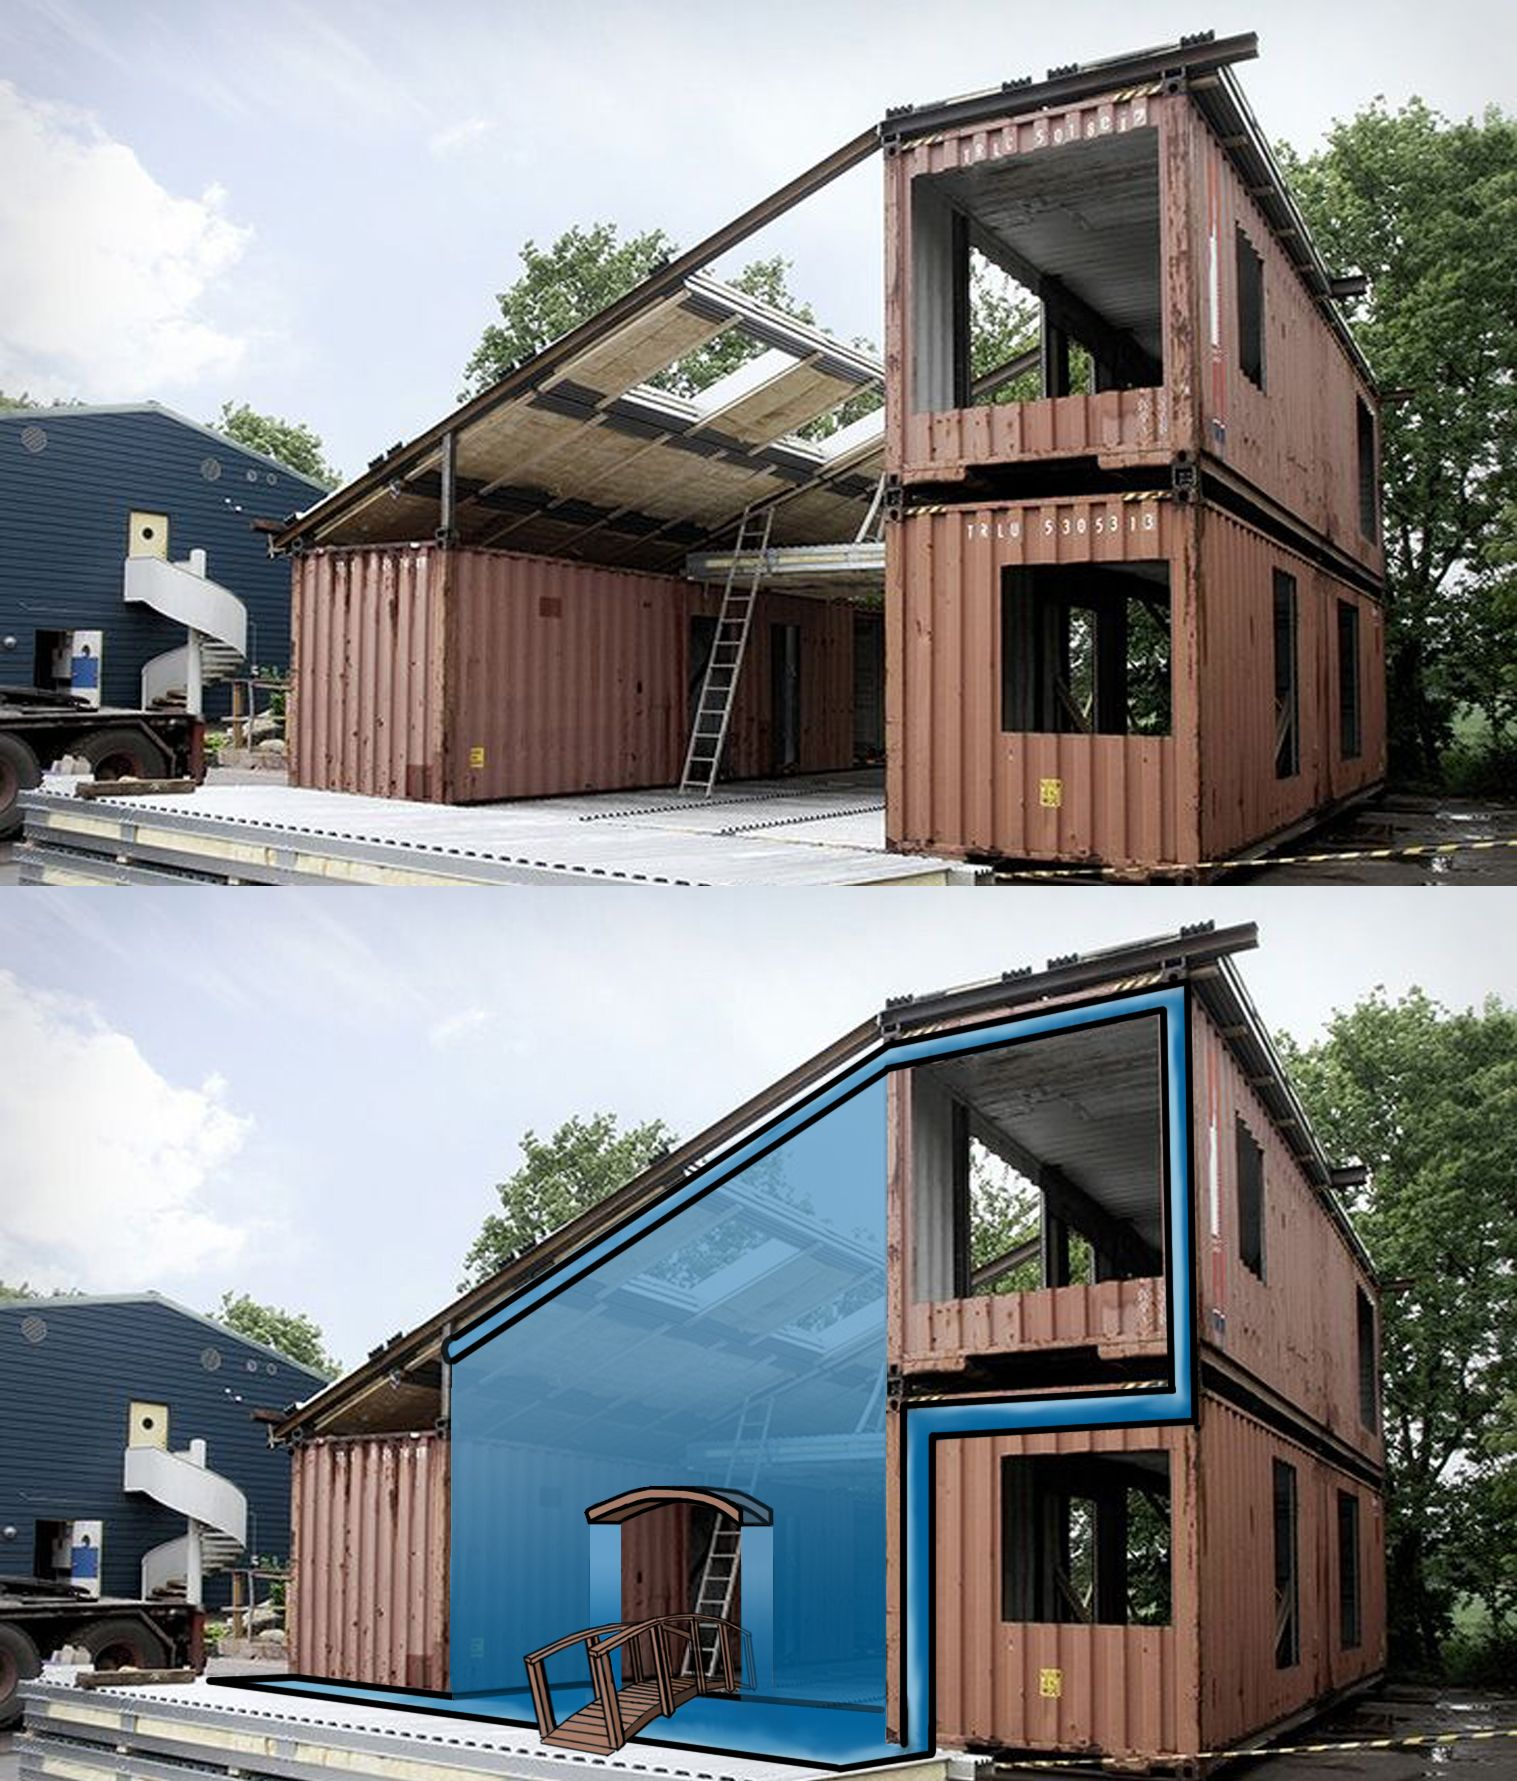 Photoshop rendition of a House made of Shipping Containers